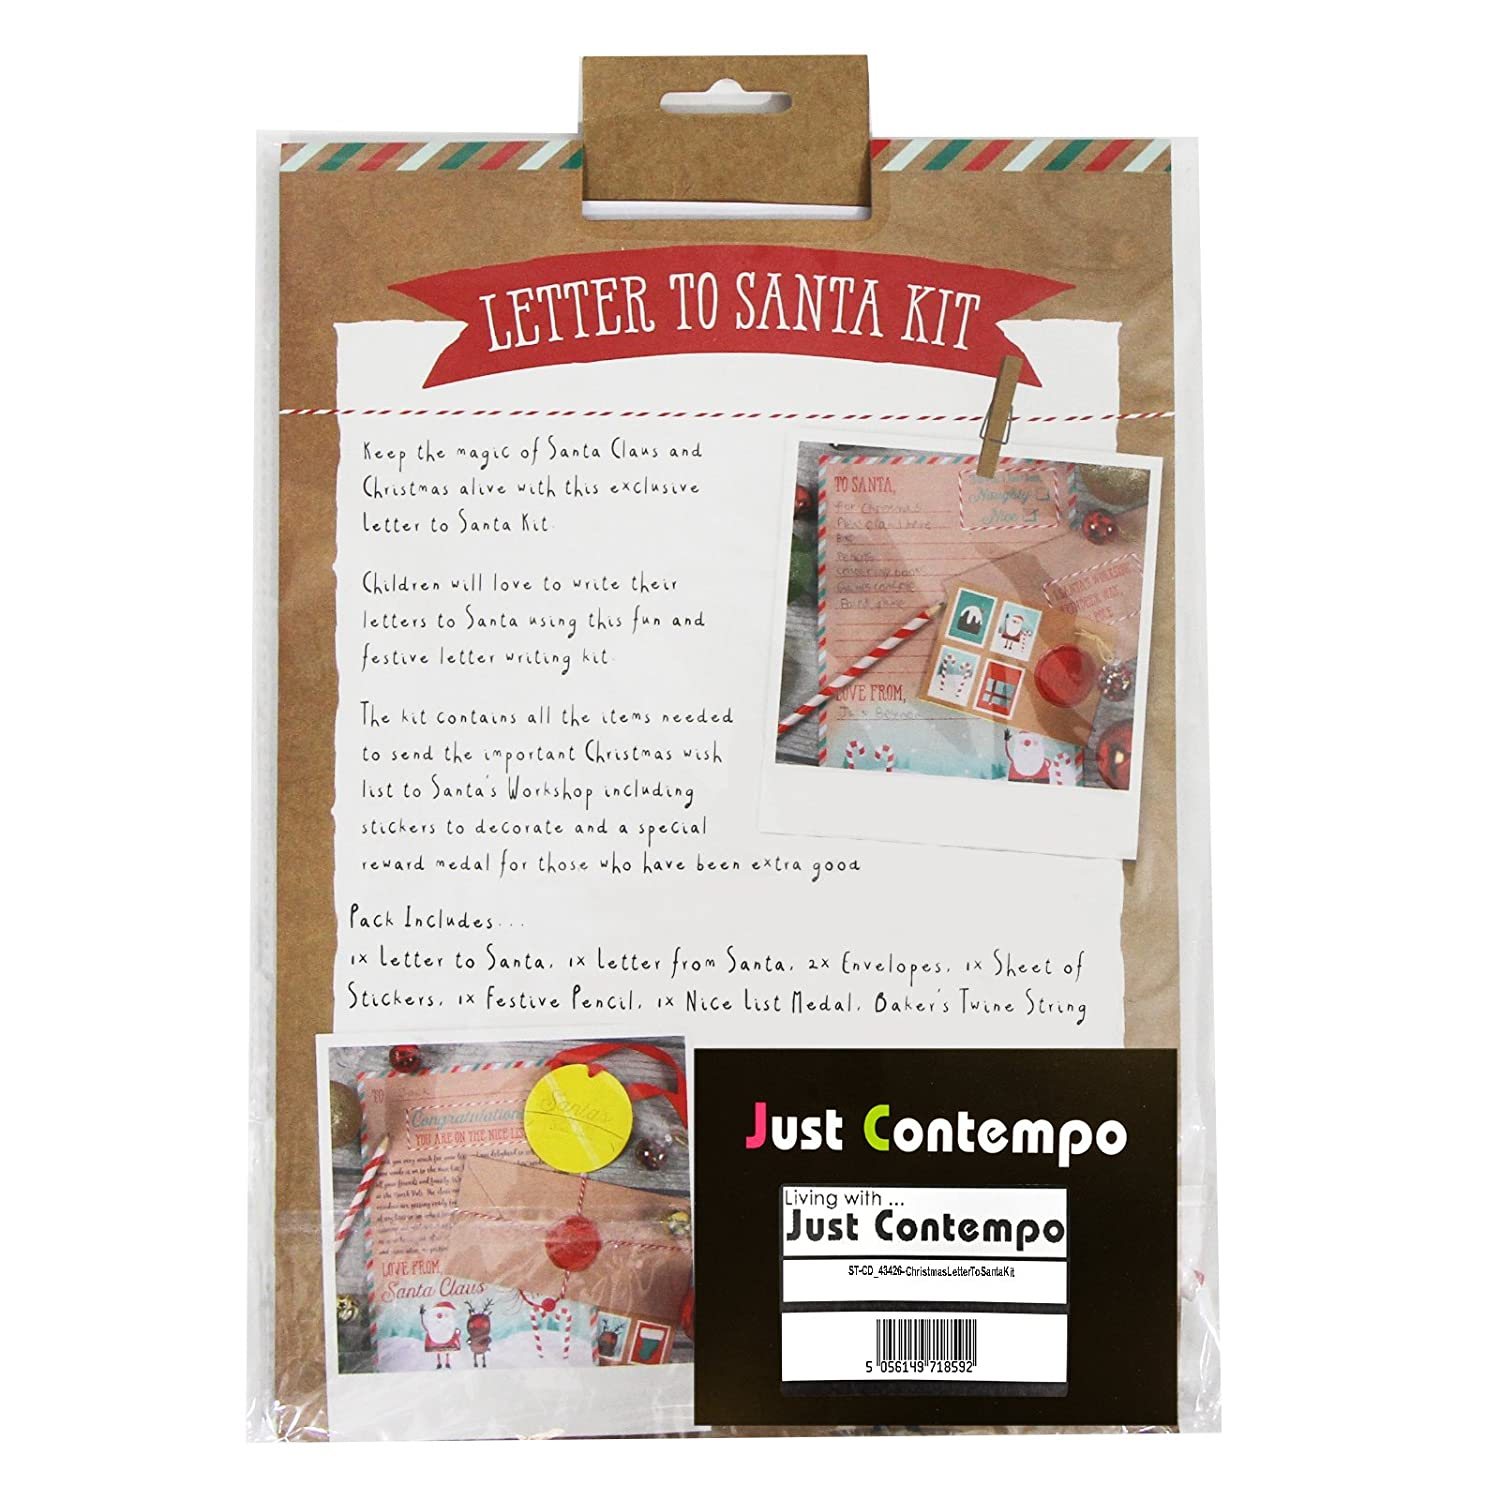 Just contempo christmas festive kit paper wood letter to santa just contempo christmas festive kit paper wood letter to santa 24 x 32 x 1 cm amazon kitchen home spiritdancerdesigns Images